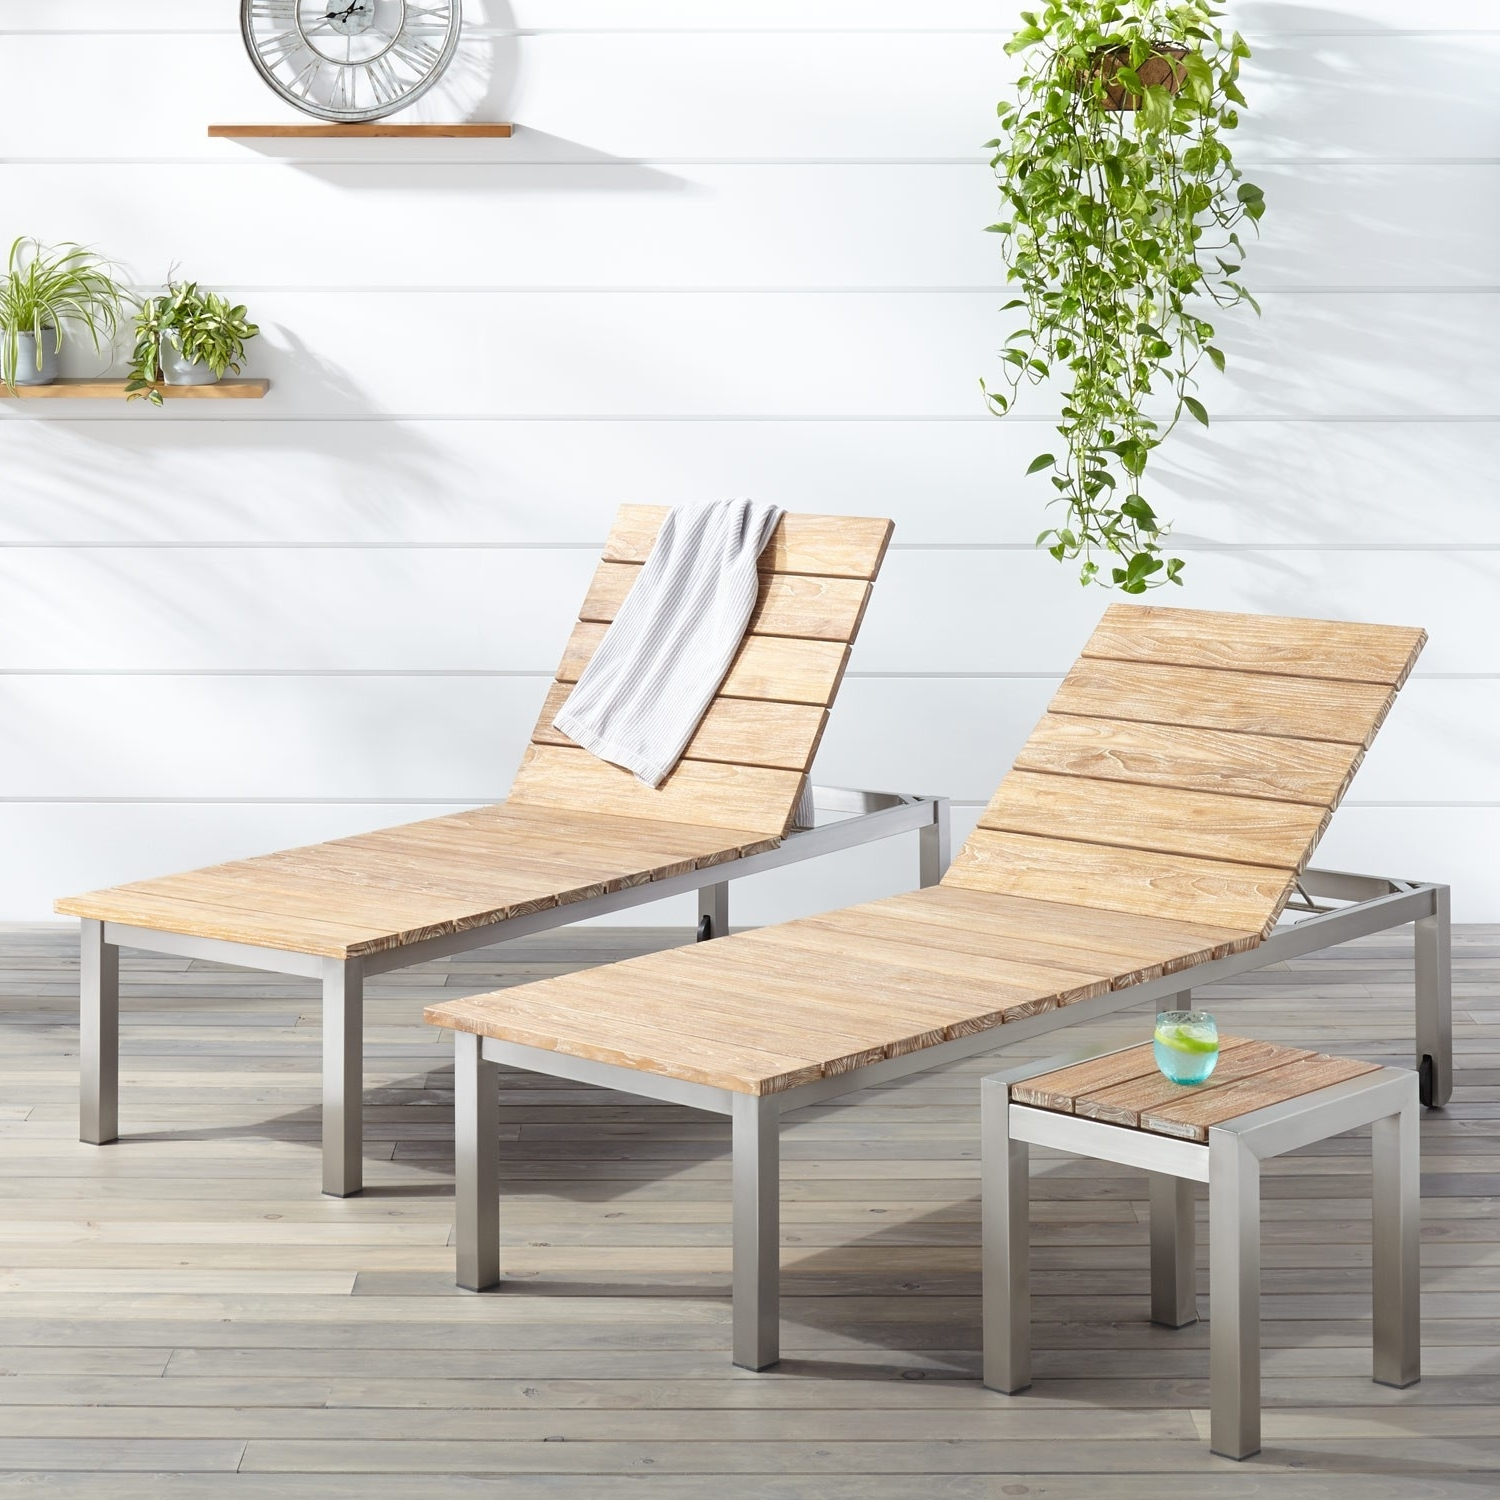 Outdoor Chaise Lounges Intended For Most Current Macon 3 Piece Teak Outdoor Chaise Lounge Chair Set – Whitewash (View 12 of 15)